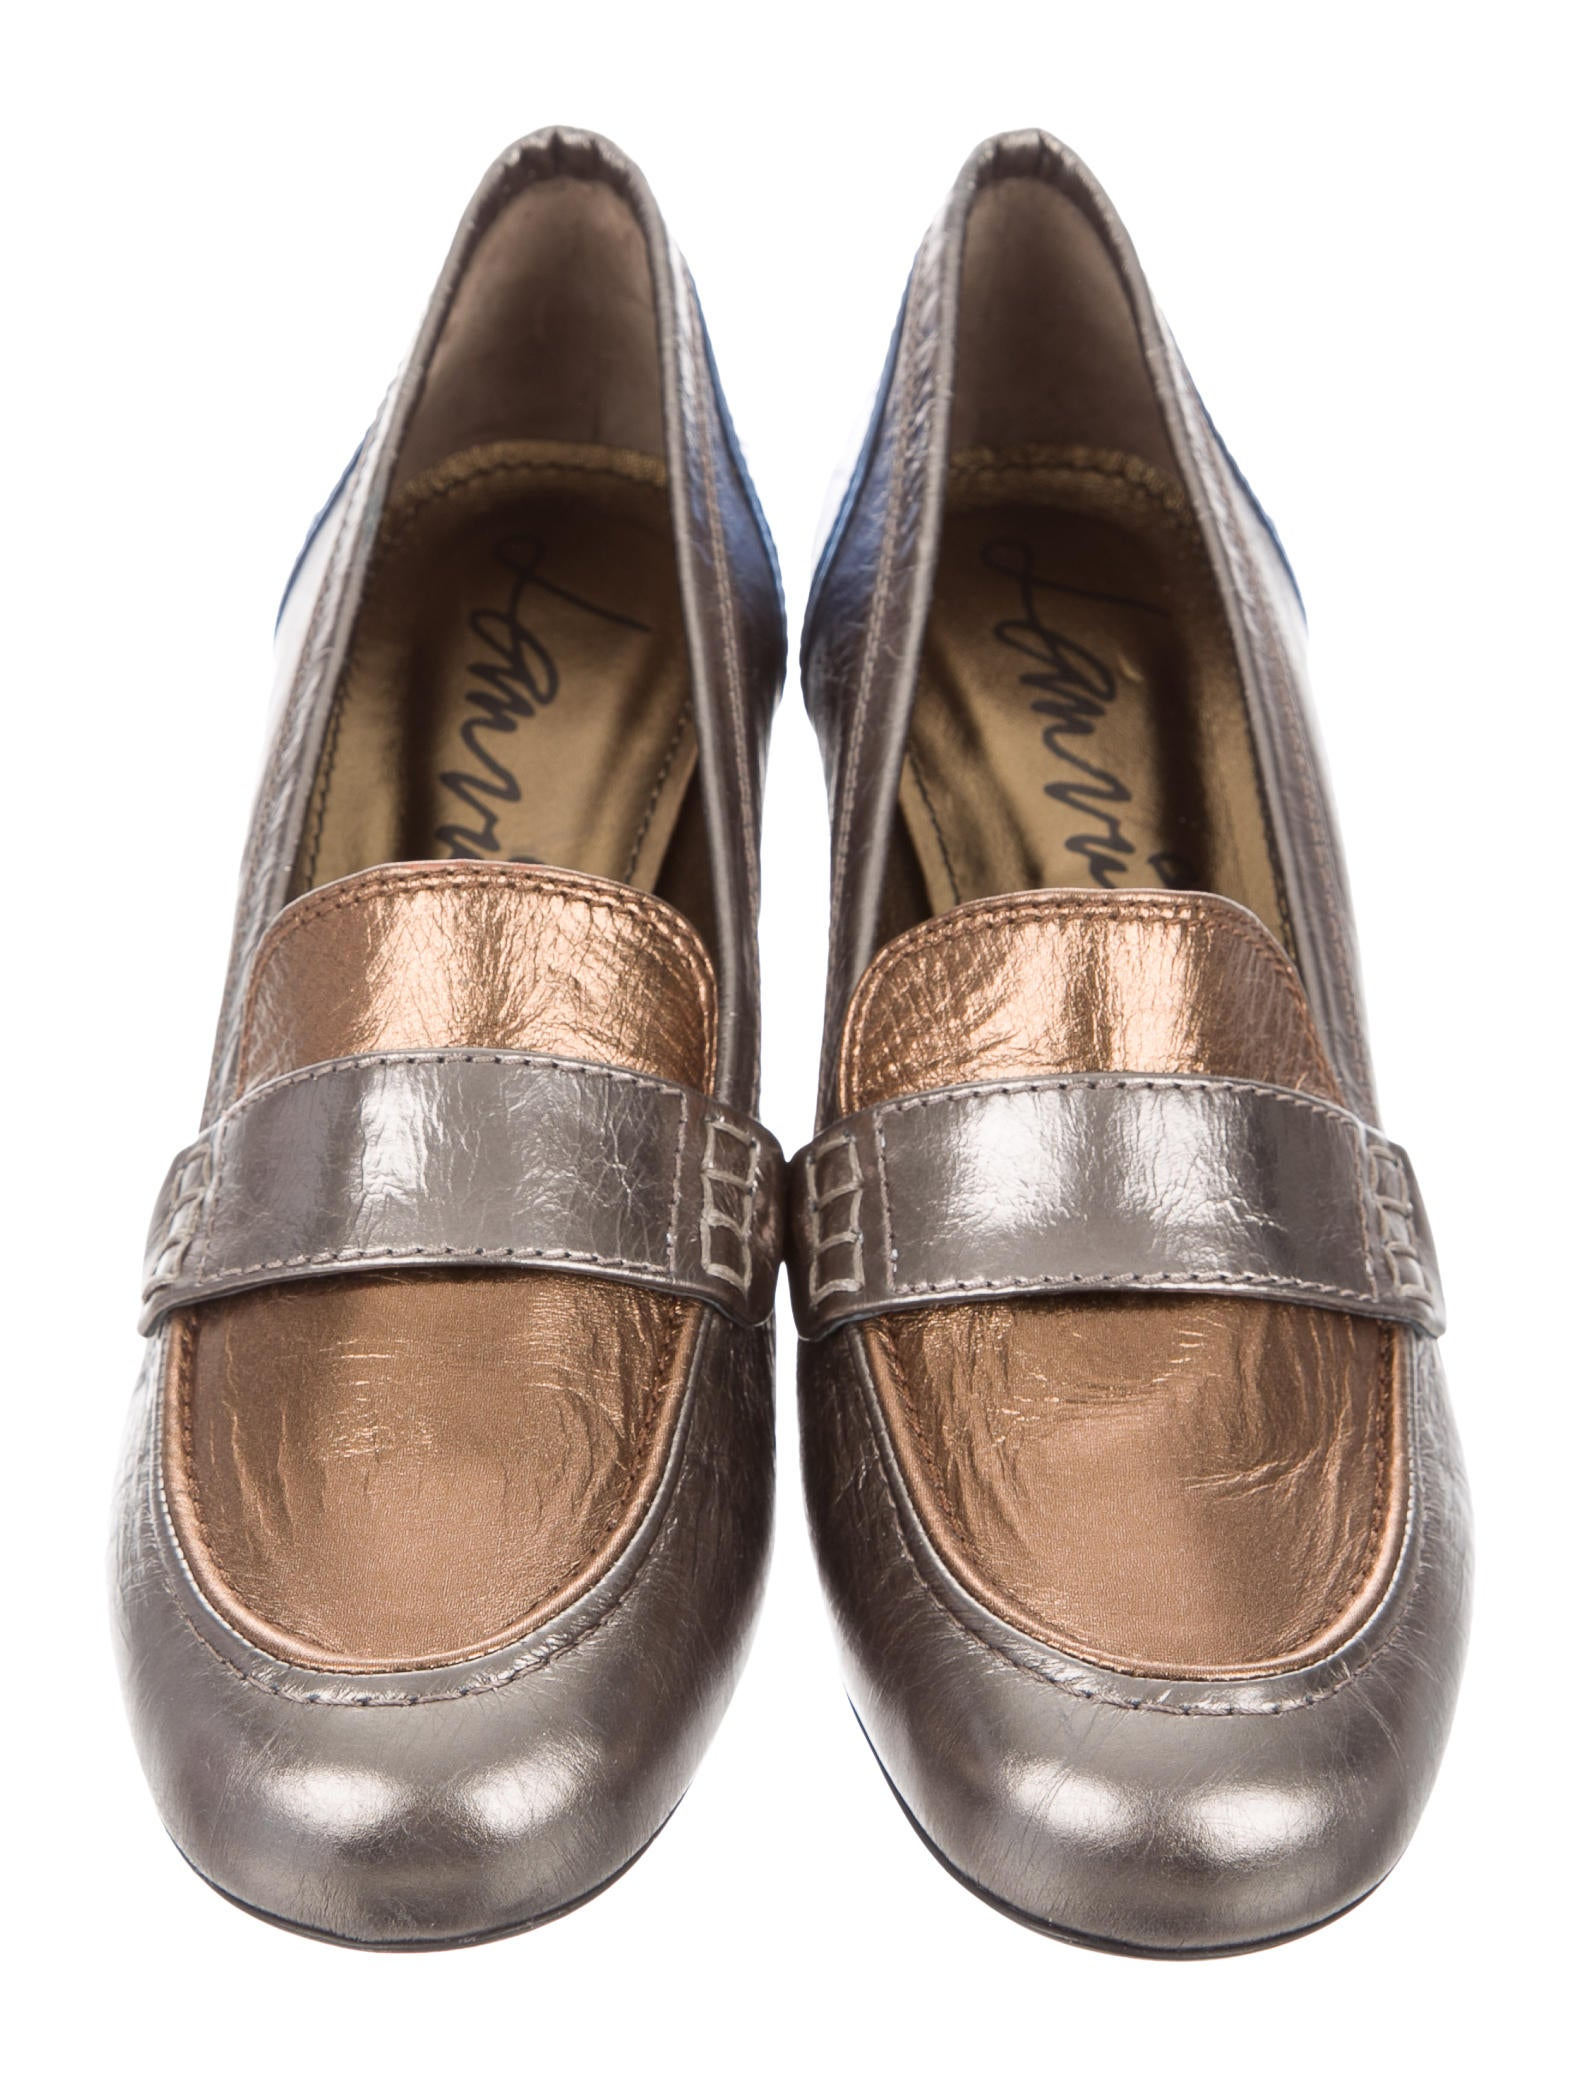 Metallic Leather Boots : Lanvin metallic leather pumps shoes lan the